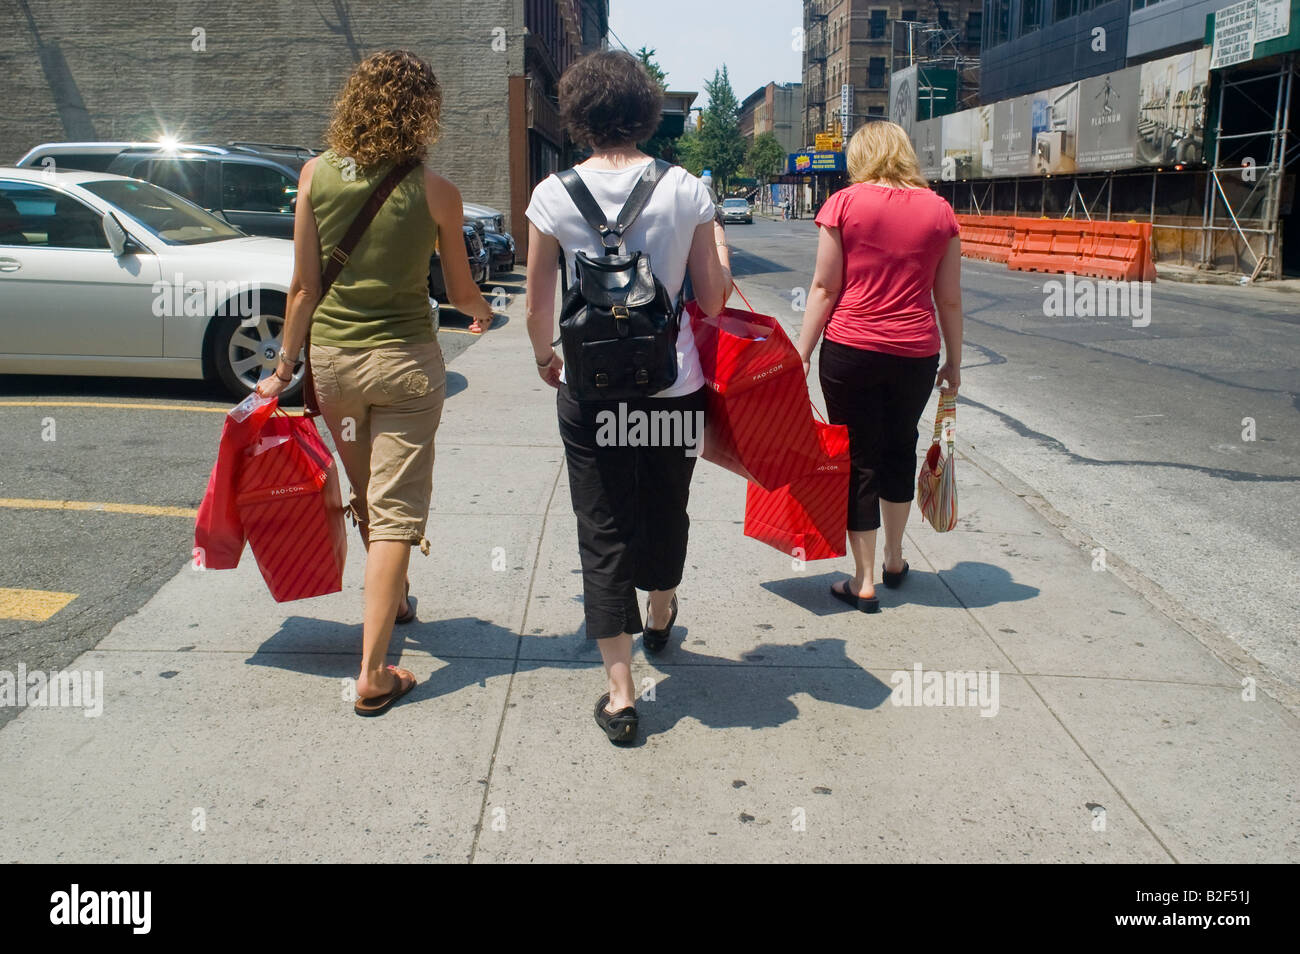 Shoppers walk down a street in Midtown in New York with their purchases from FAO Schwarz - Stock Image